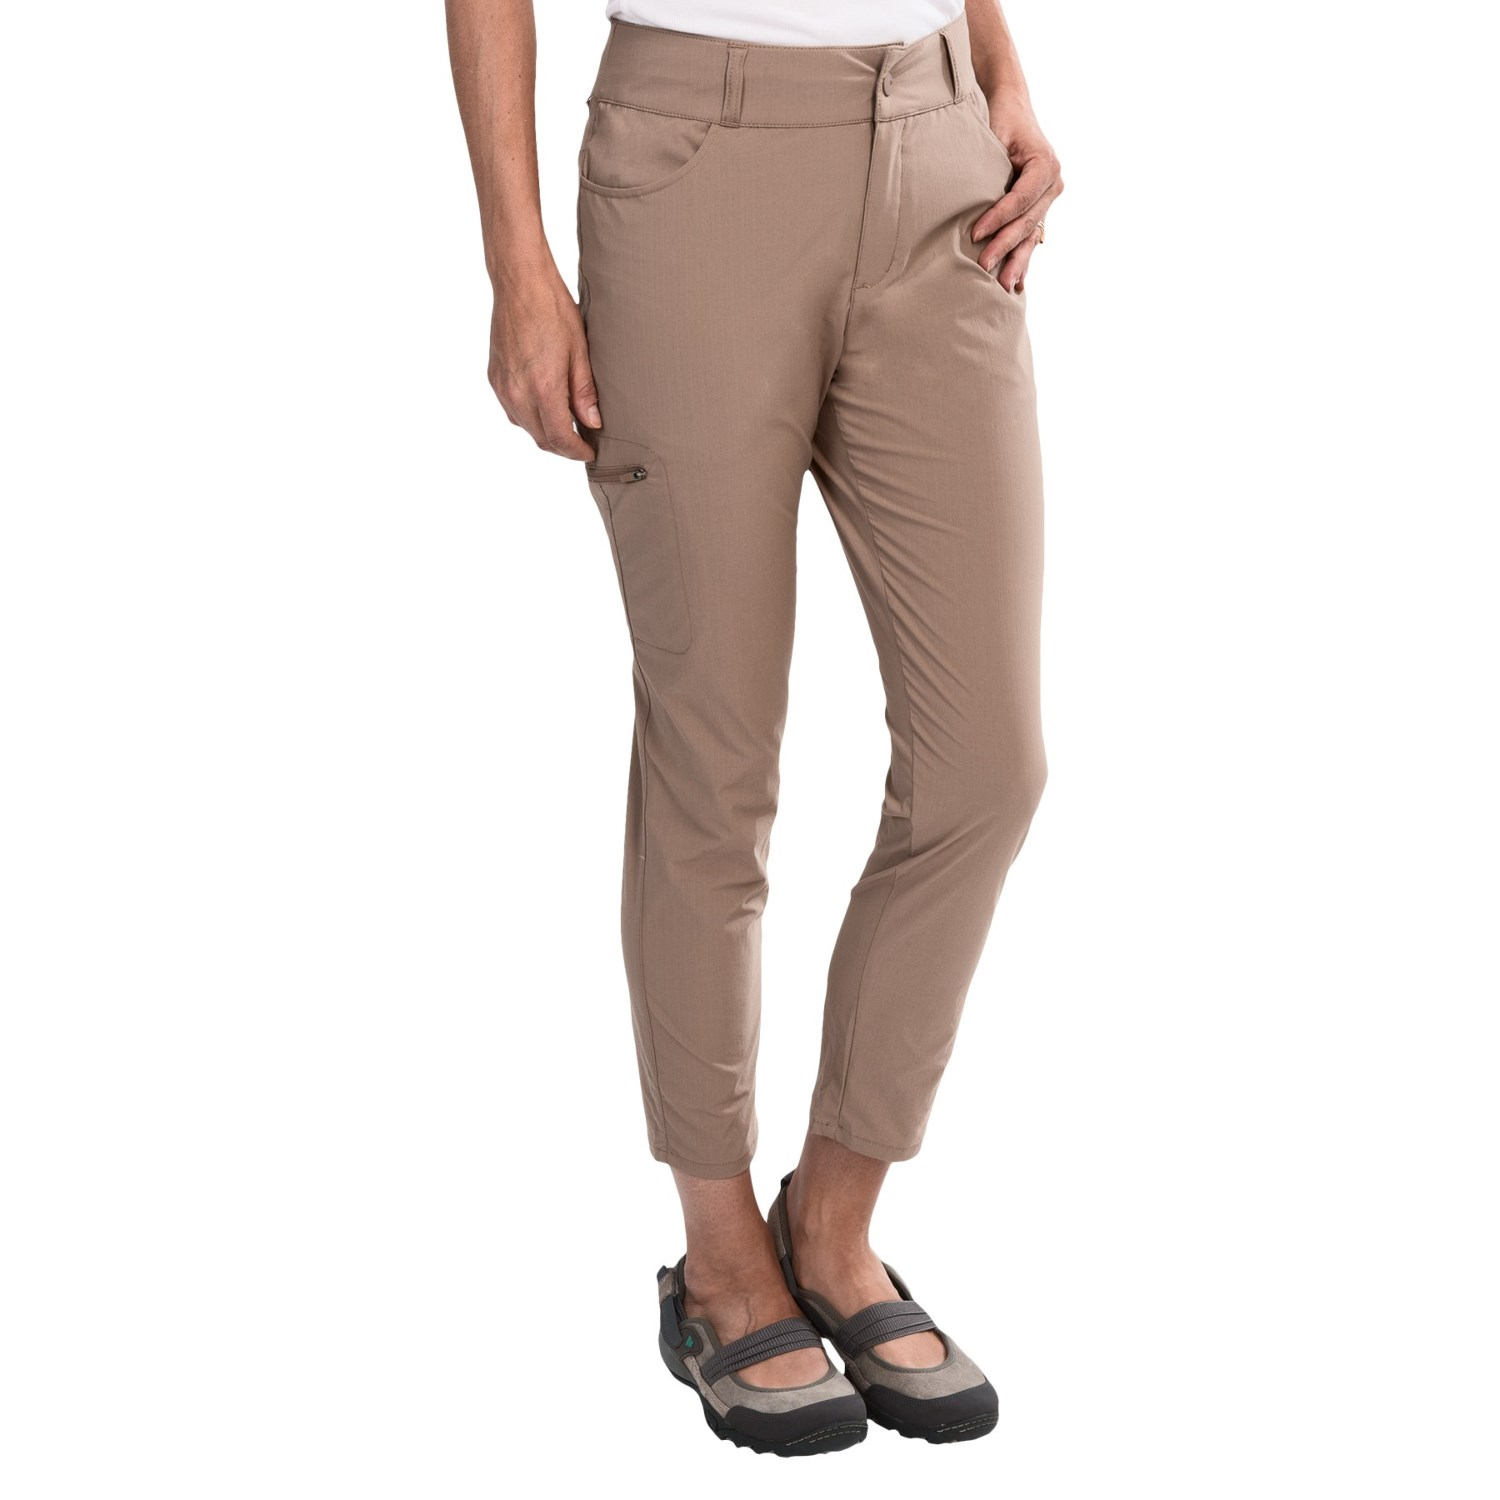 Women's ankle dress pants are versatile and easy to wear. Just add a V-Neck Essential Tank to our High Waisted Double Stripe Trouser Pant for a bold, feminine look. These dress pants are flattering, slimming, and show off your shoes perfectly.